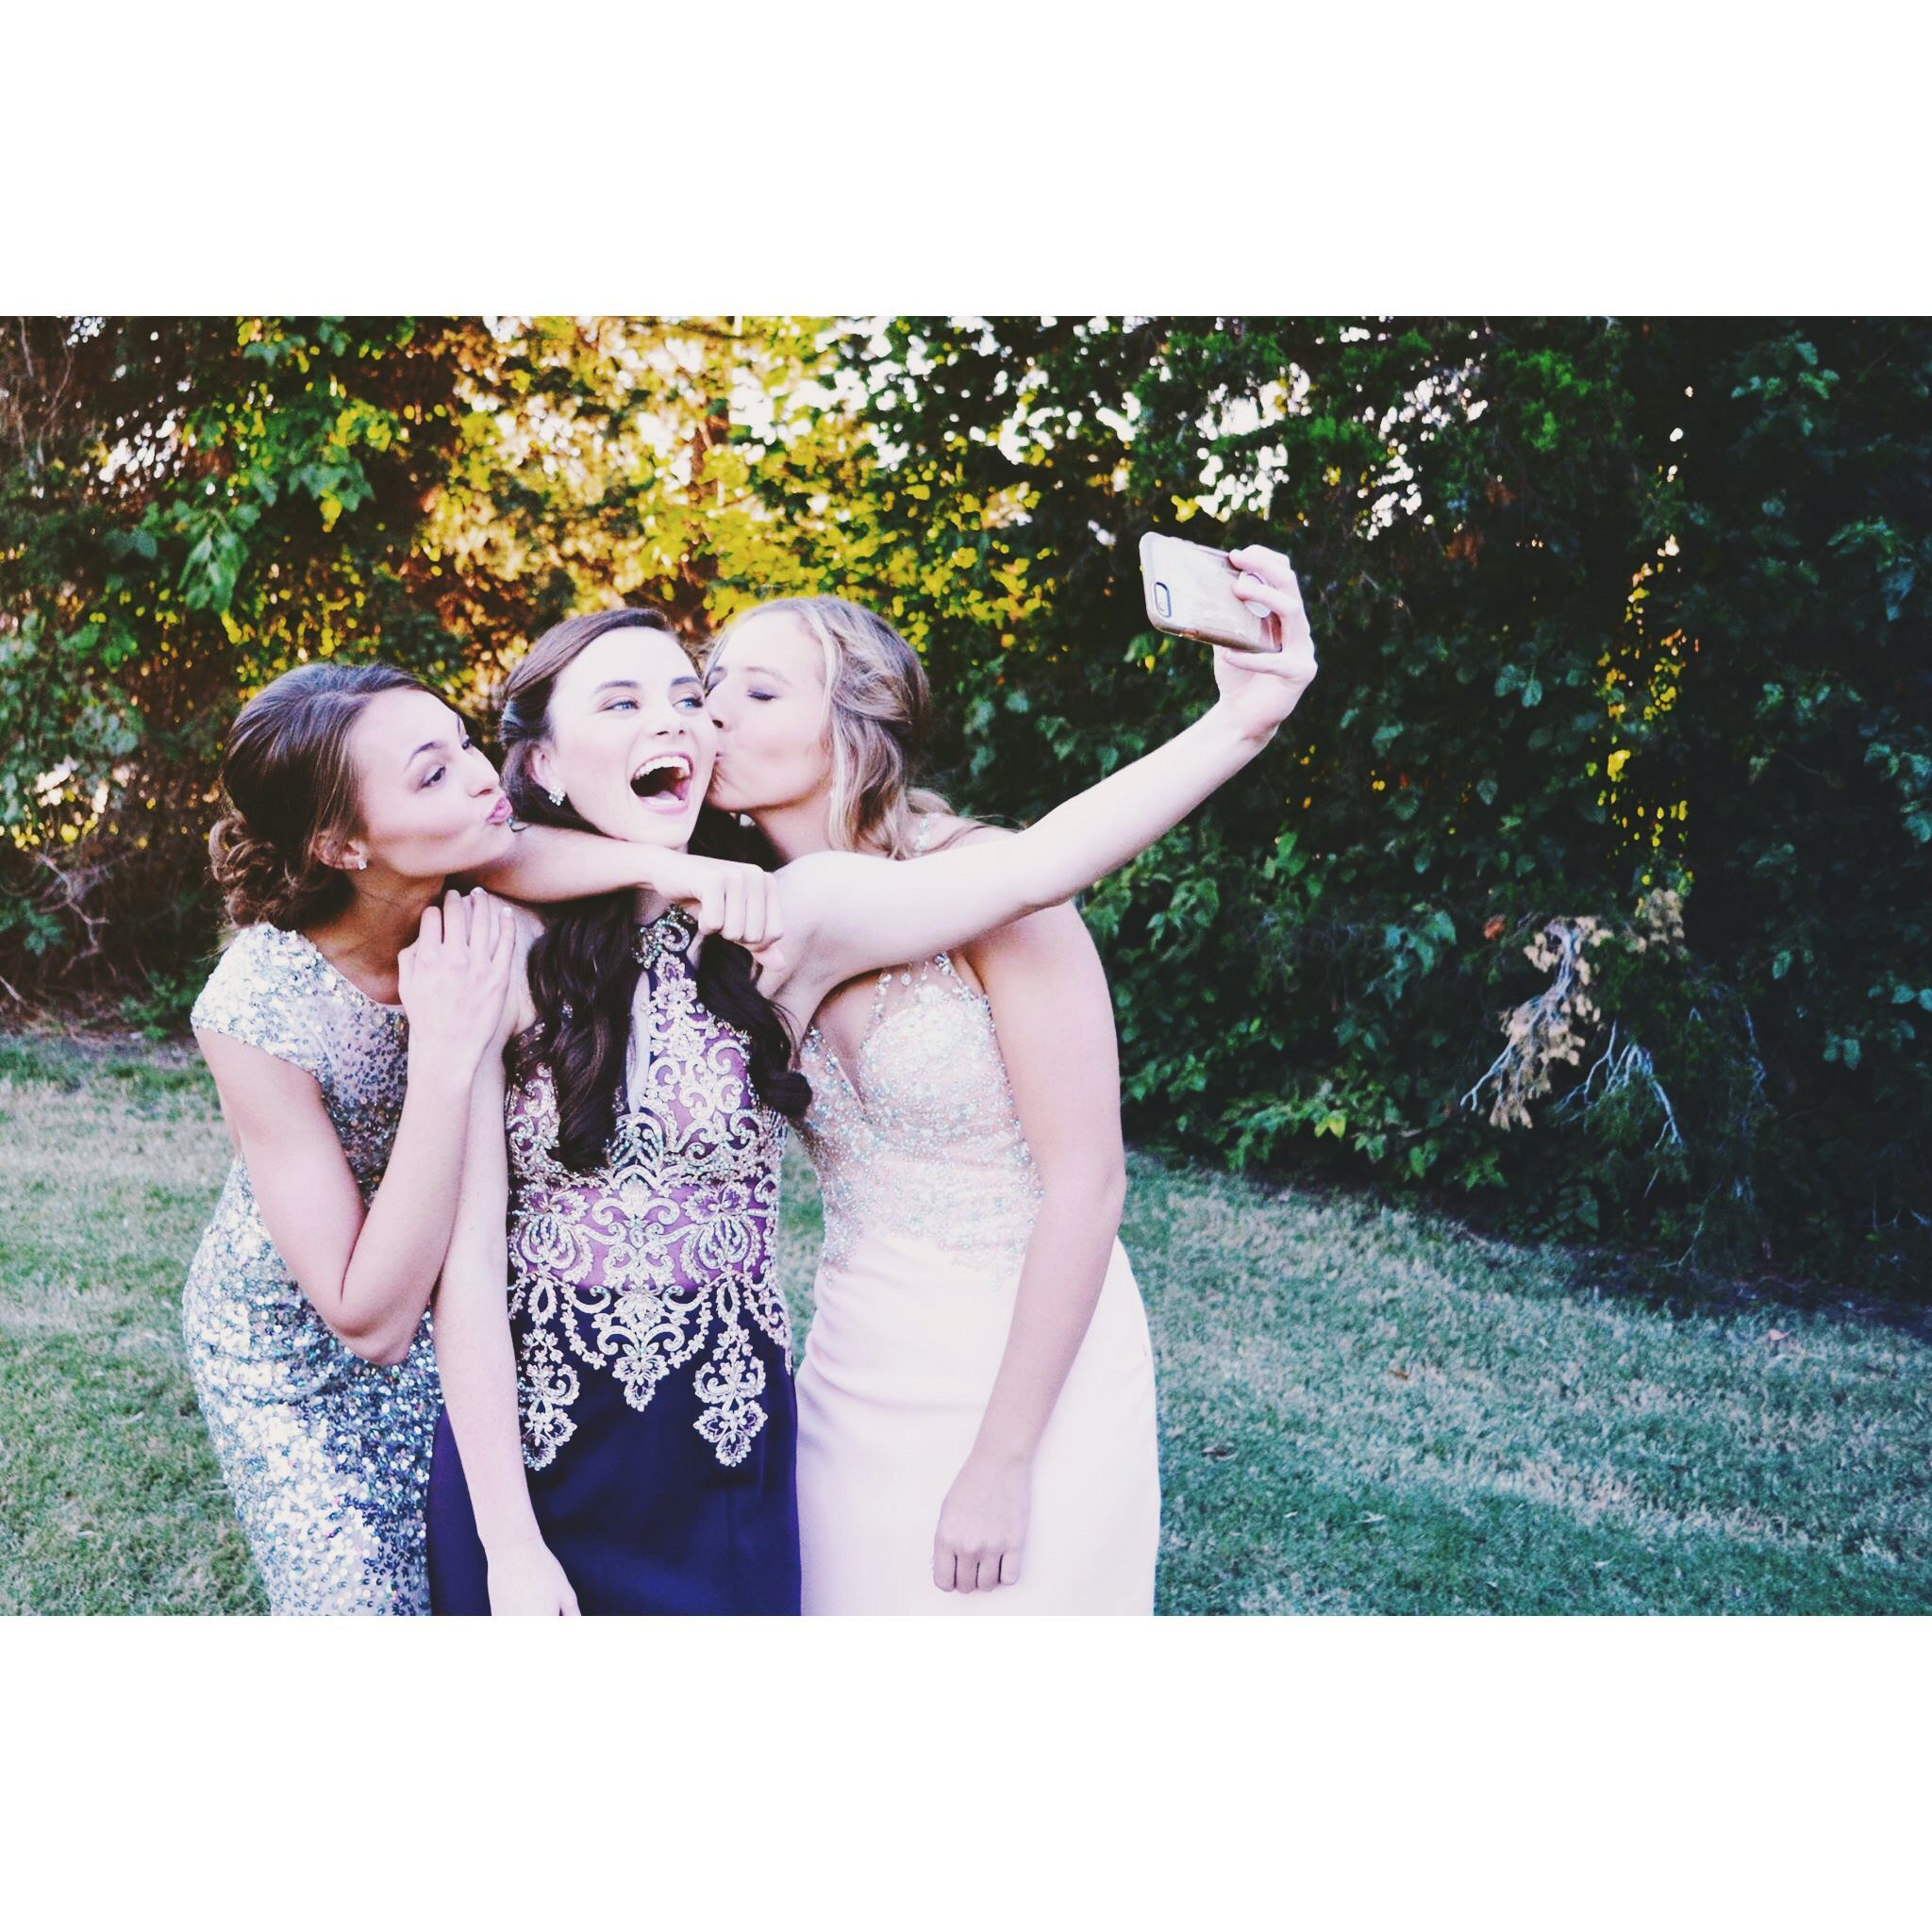 Prom photography couple or group or friend picture ideas #bestfriendprompictures #promphotographyposes